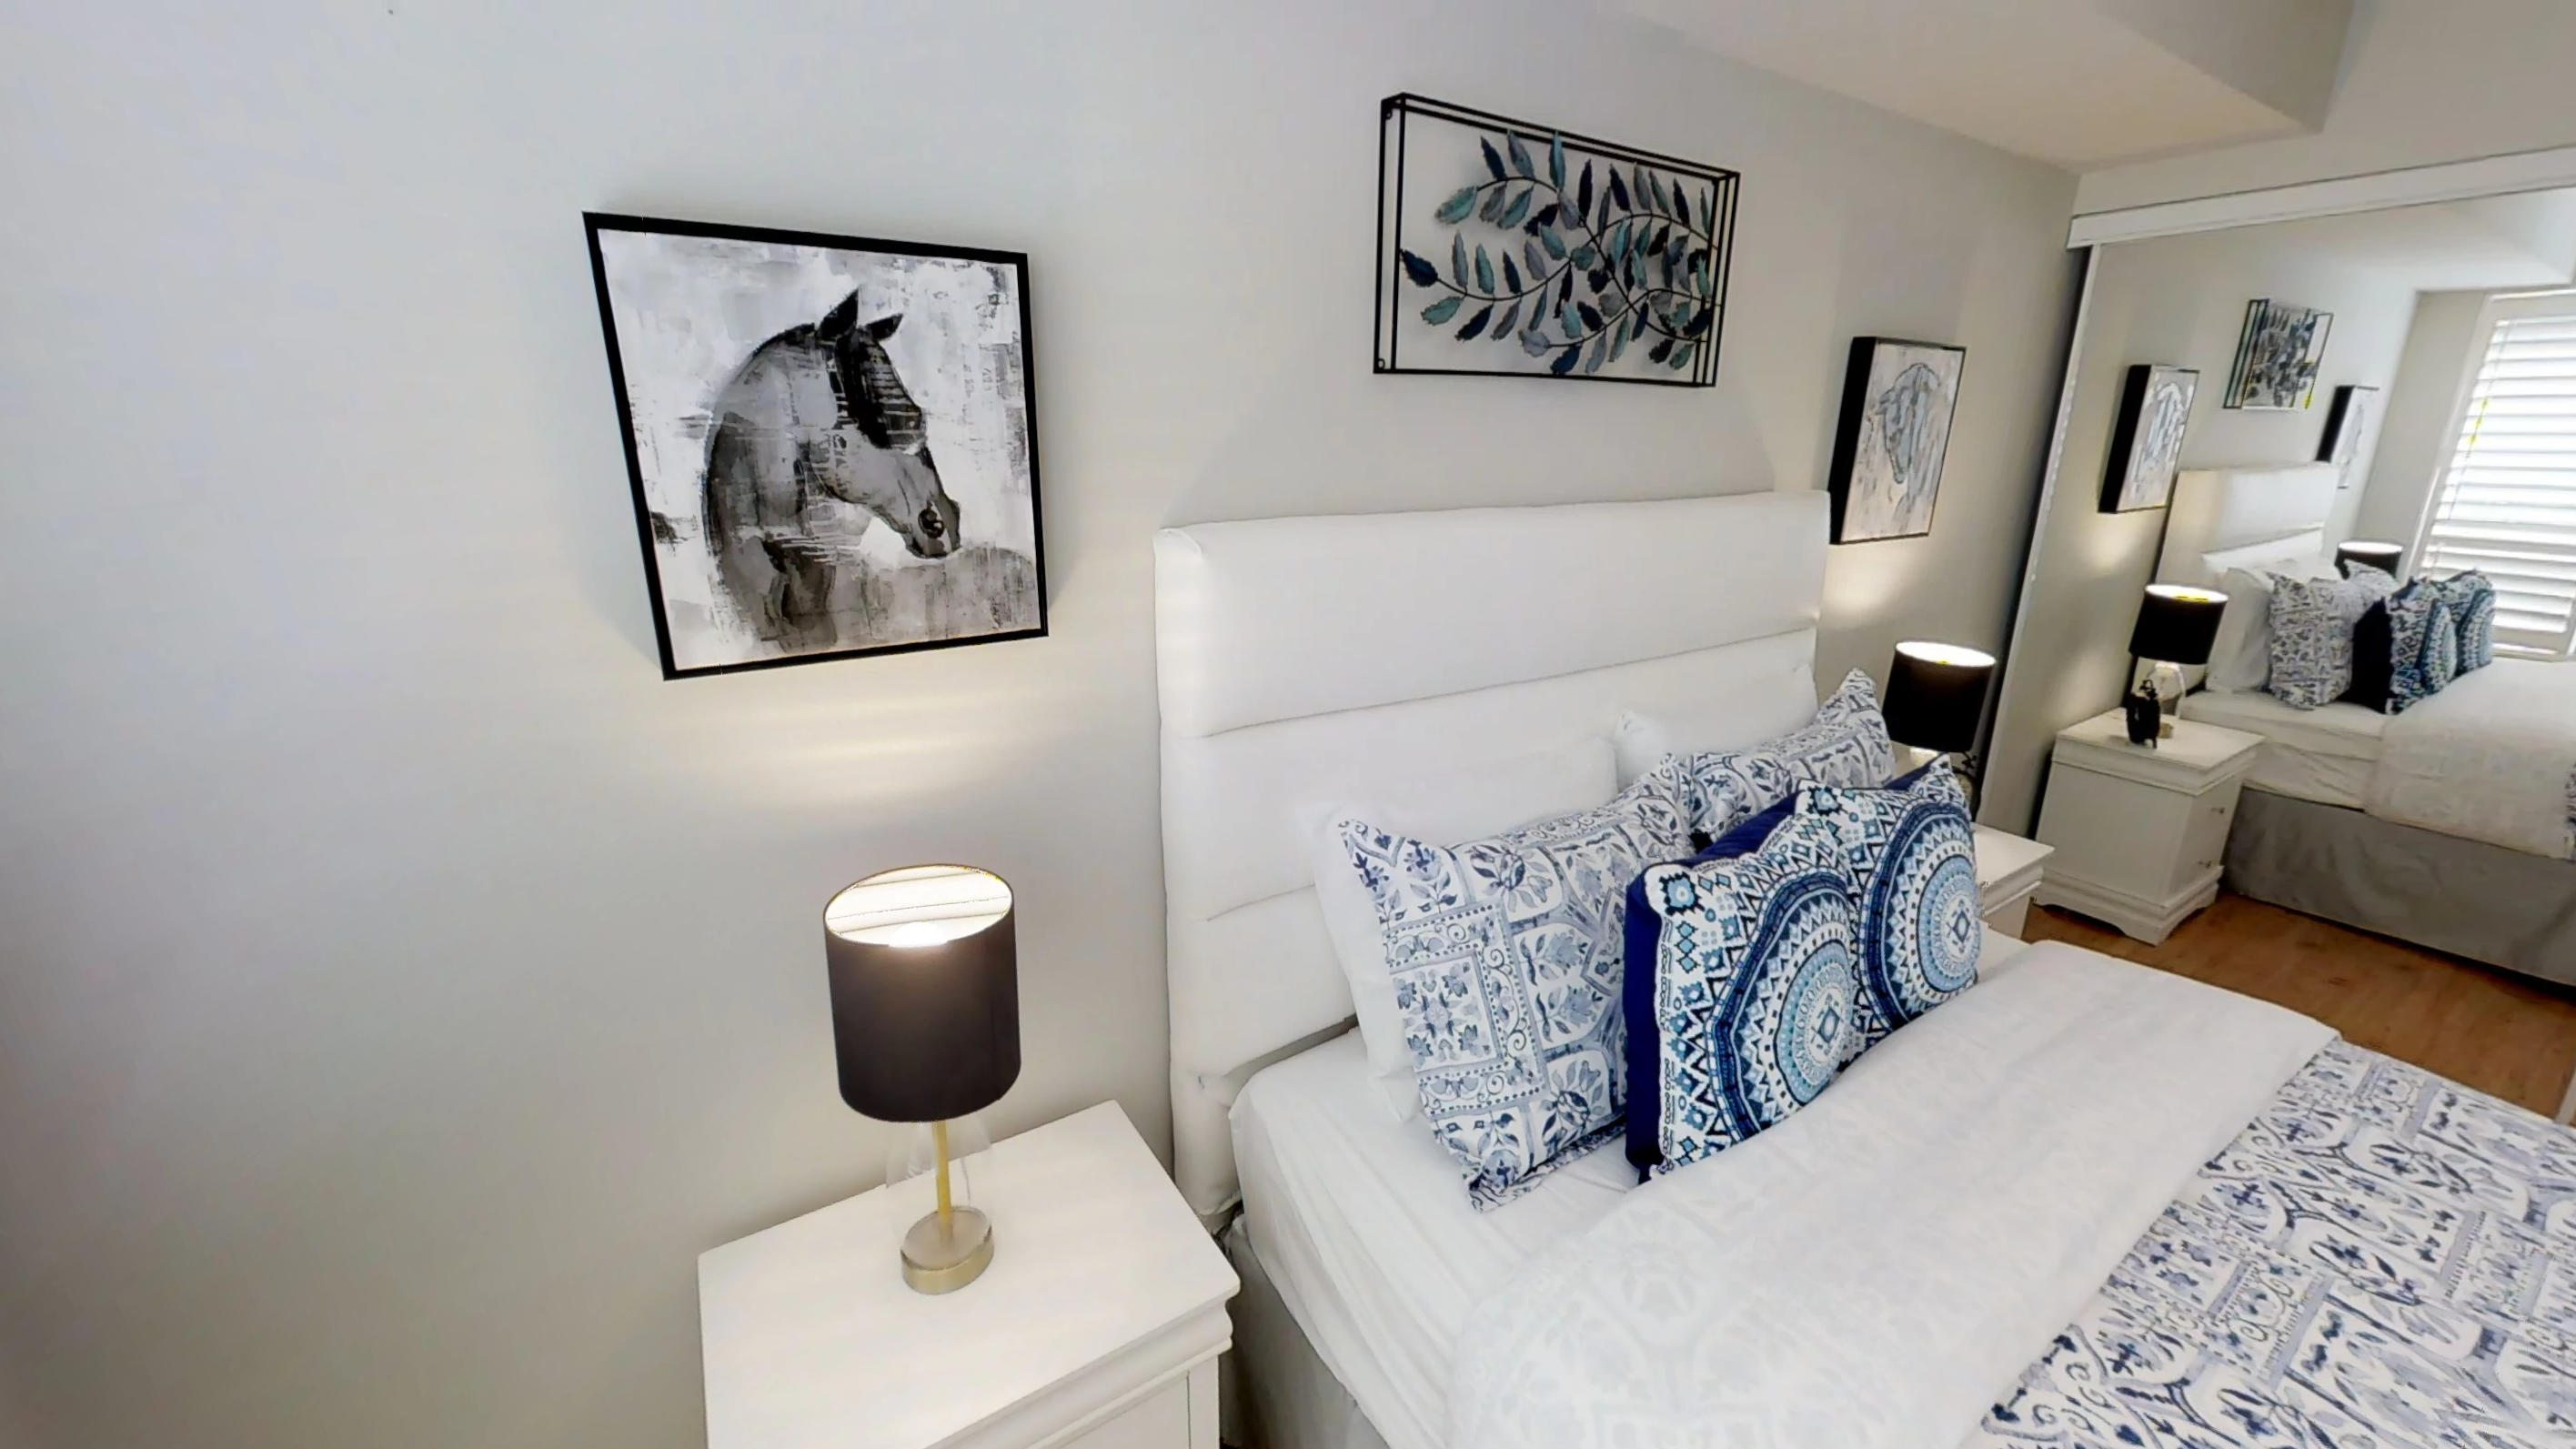 Horse art and bed in master bedroom in a fully furnished serviced apartment in downtown Toronto, near the Roger's Centre